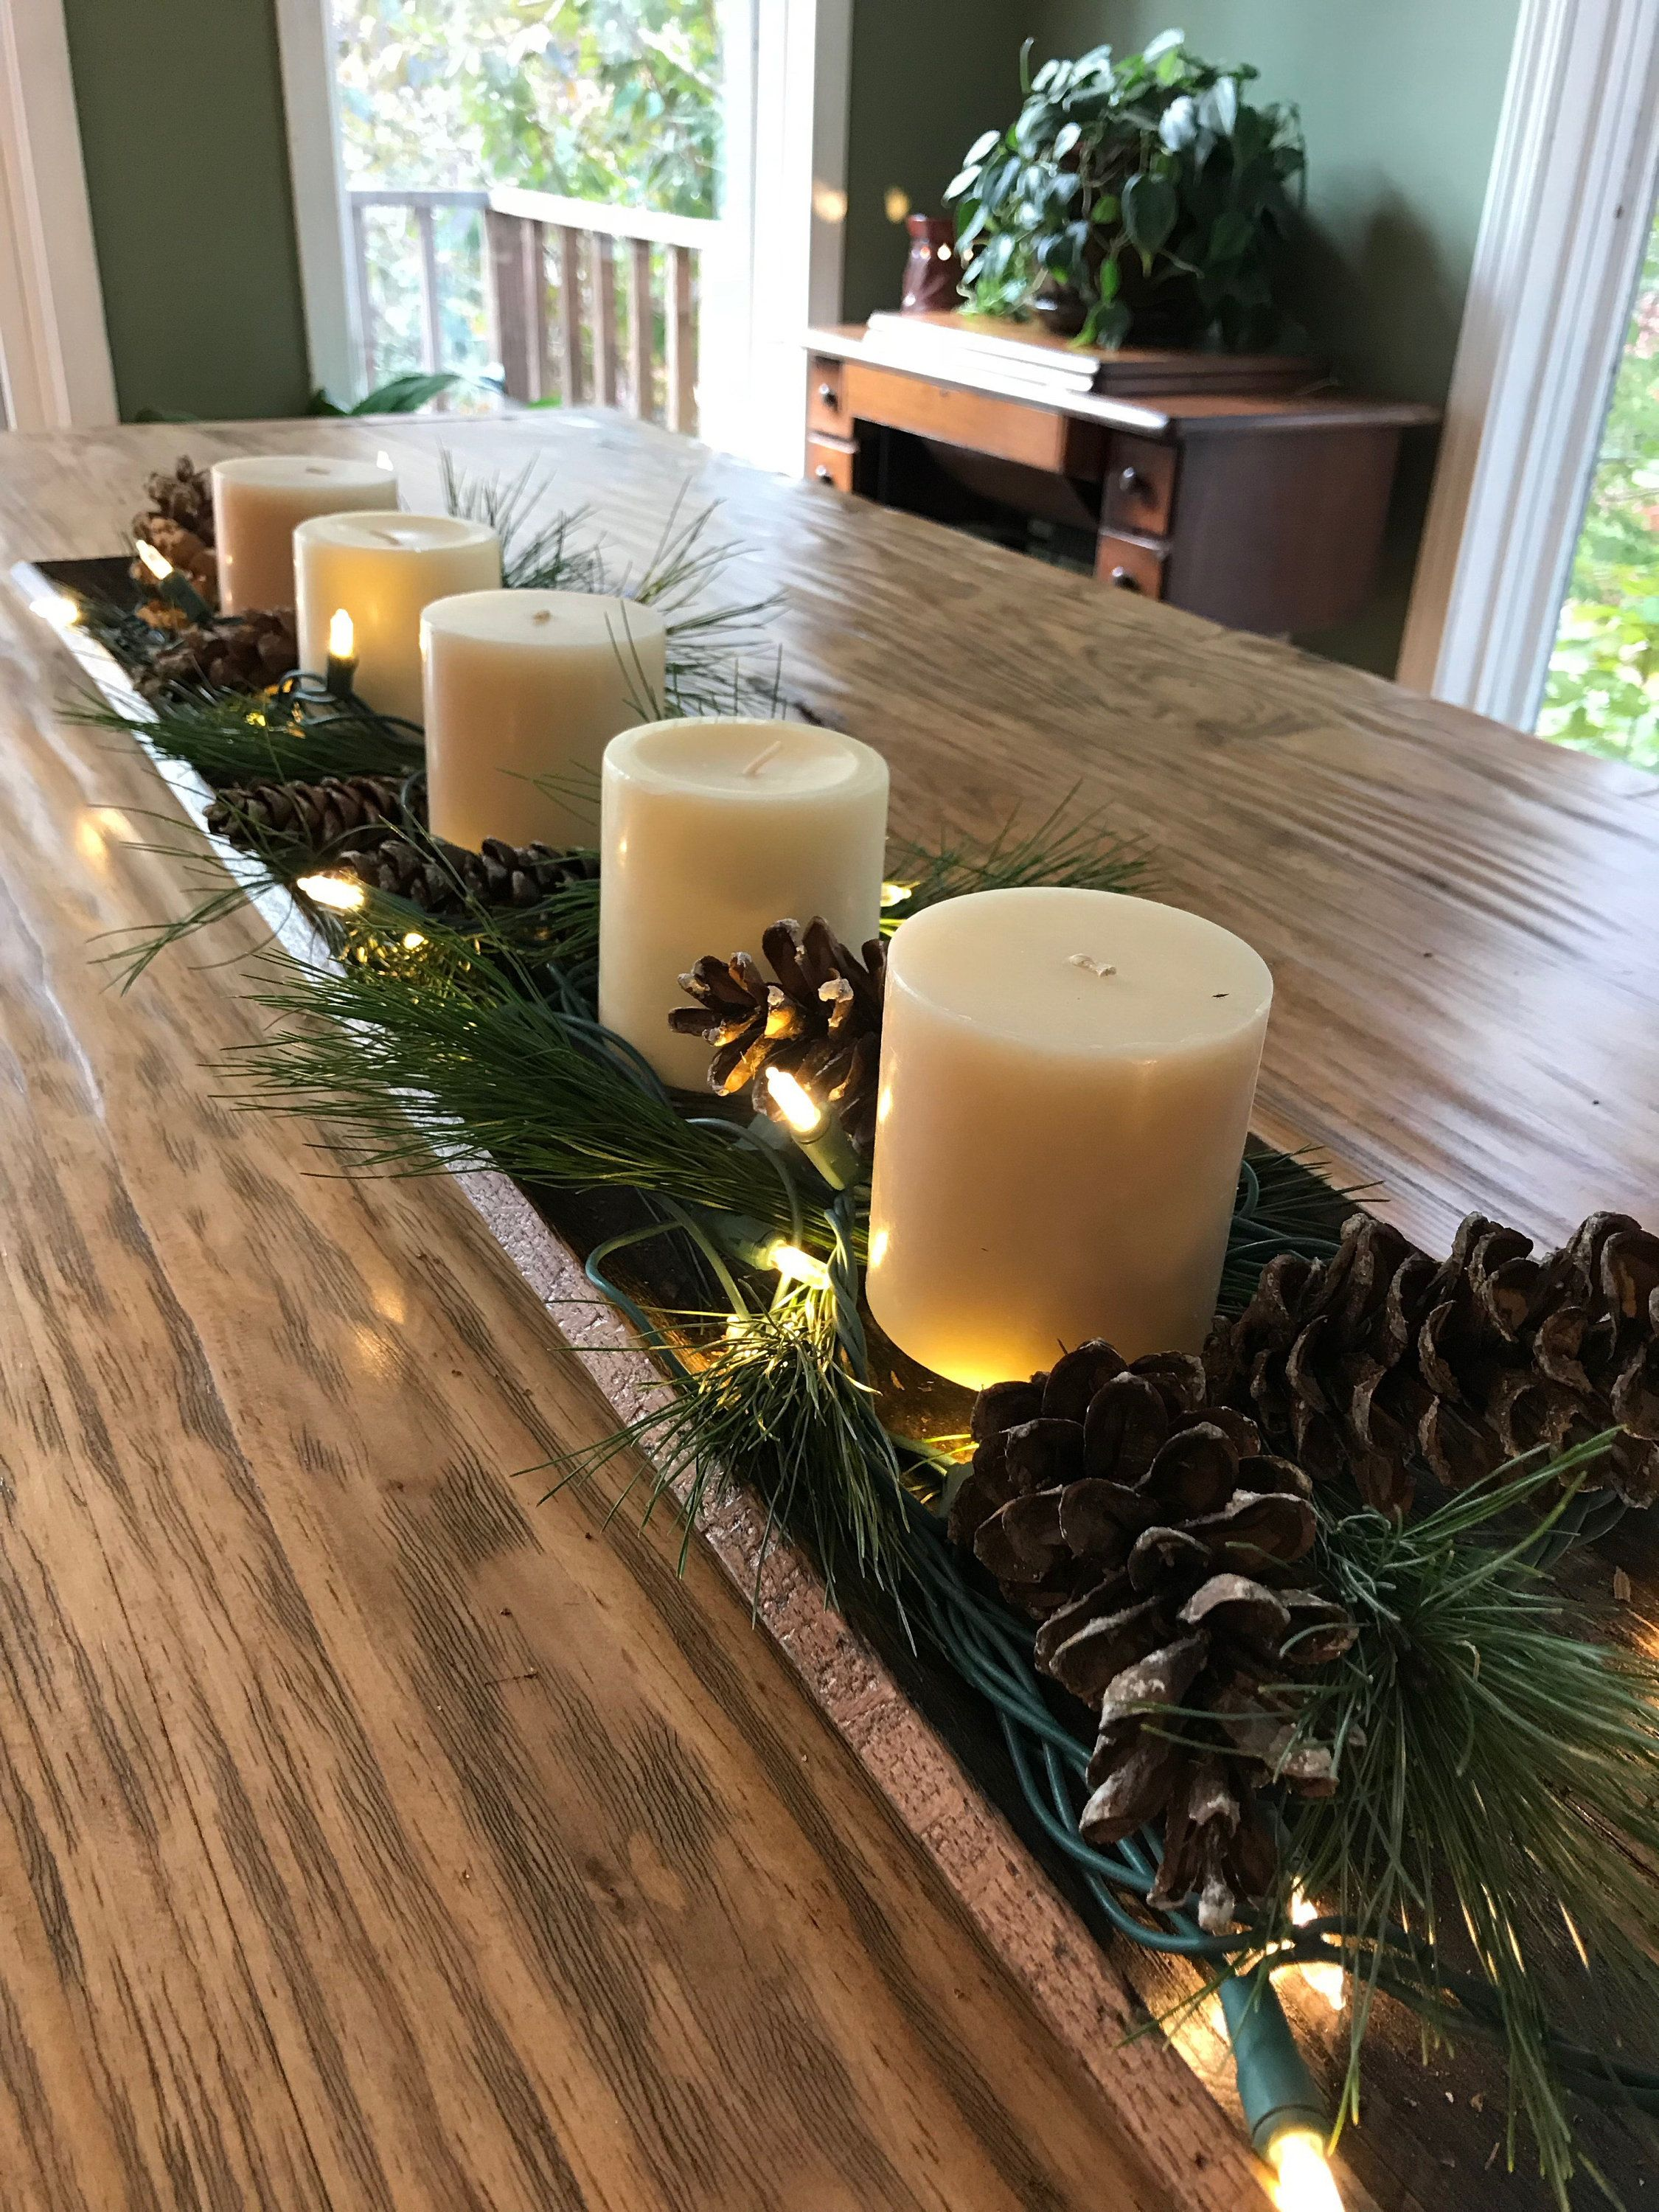 Centerpiece Tray Rustic Centerpiece Tray Holiday Centerpiece Tray Rustic Wood Tray Rustic Decor Wood Tray Dining Table Centerpiece Christmas Dining Table Christmas Table Centerpieces Table Centerpiece Decorations